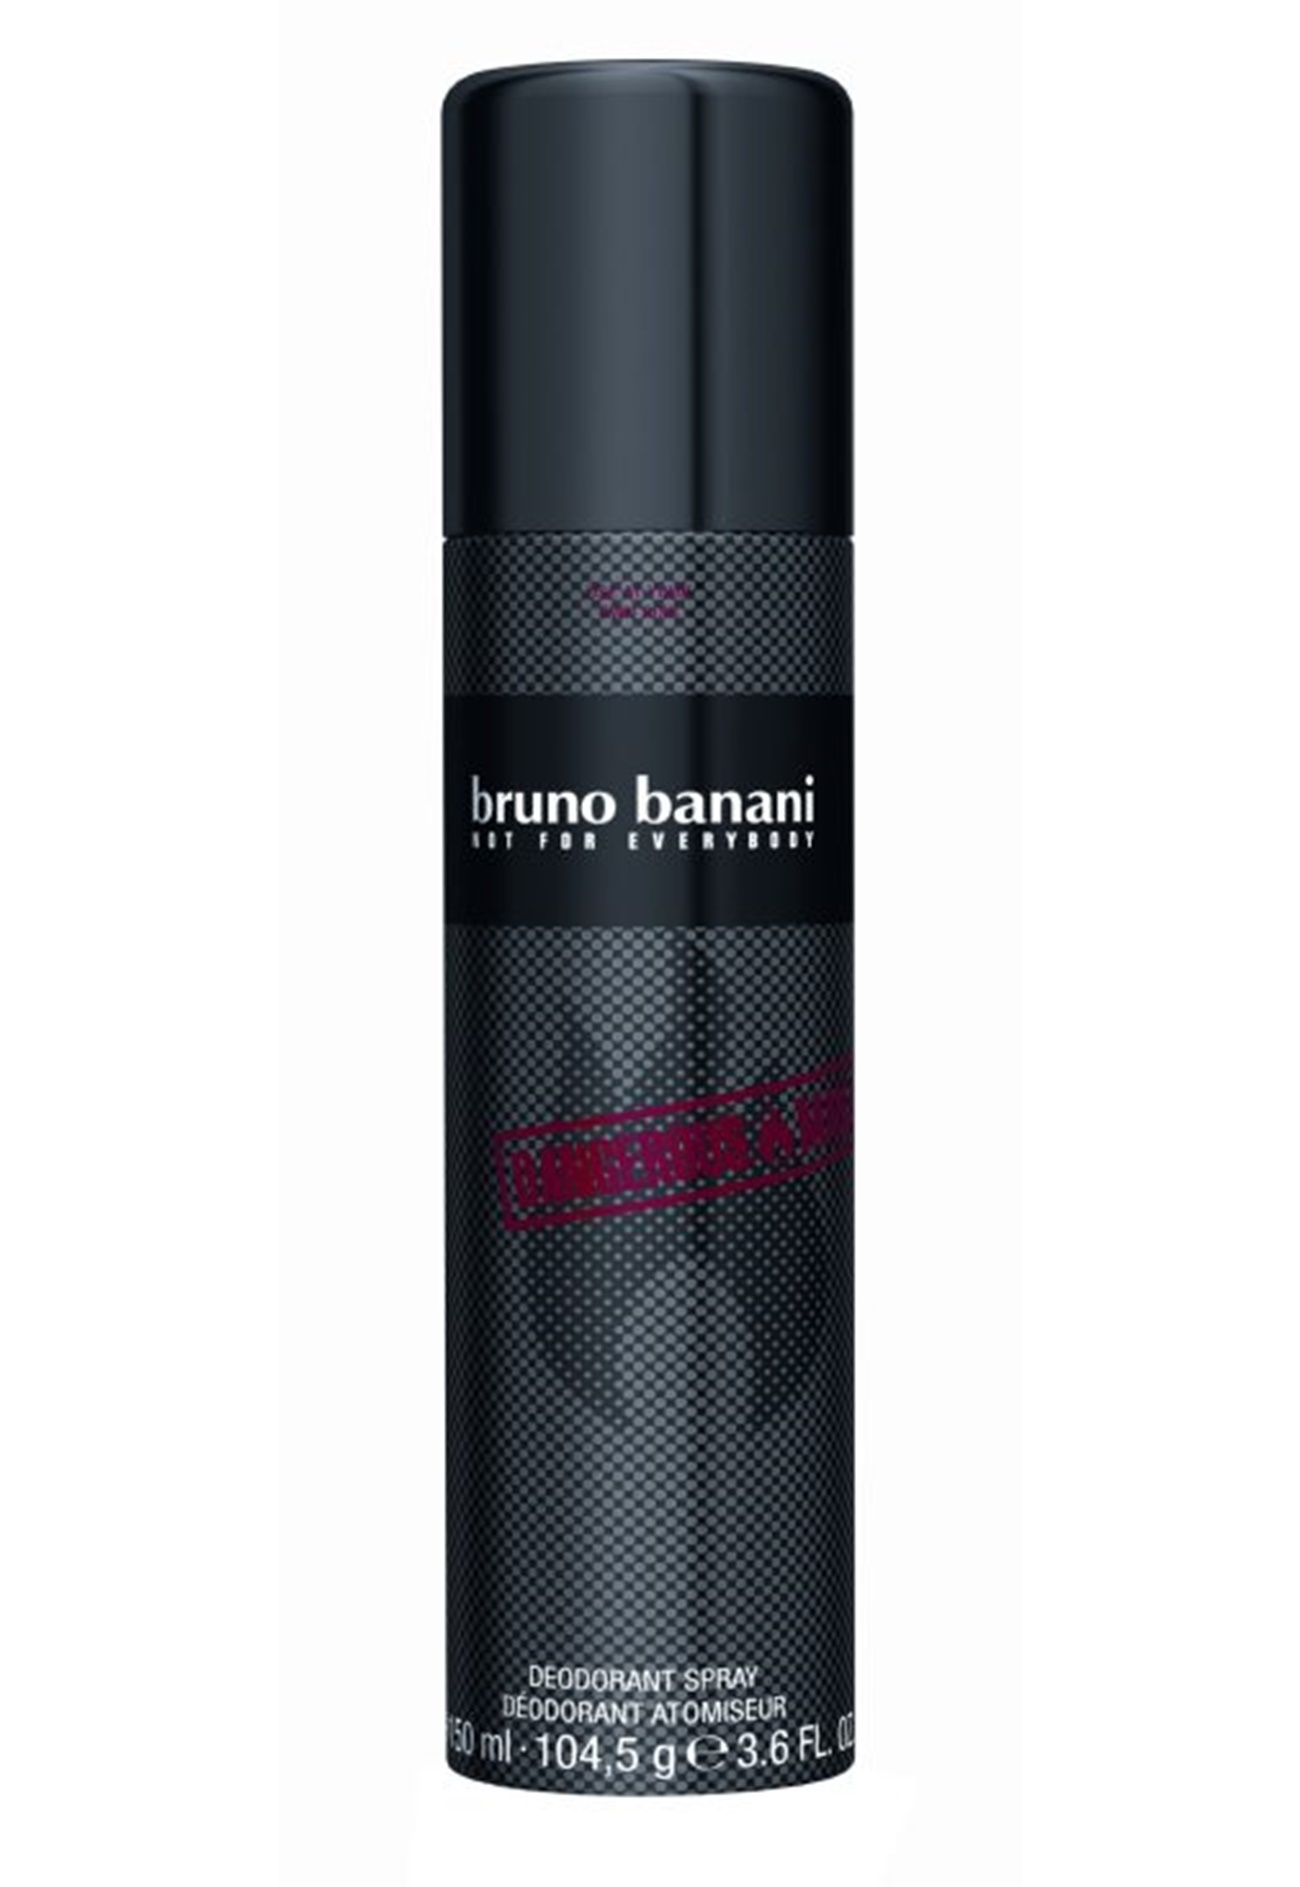 bruno banani bruno banani pure man deo spray 150ml. Black Bedroom Furniture Sets. Home Design Ideas